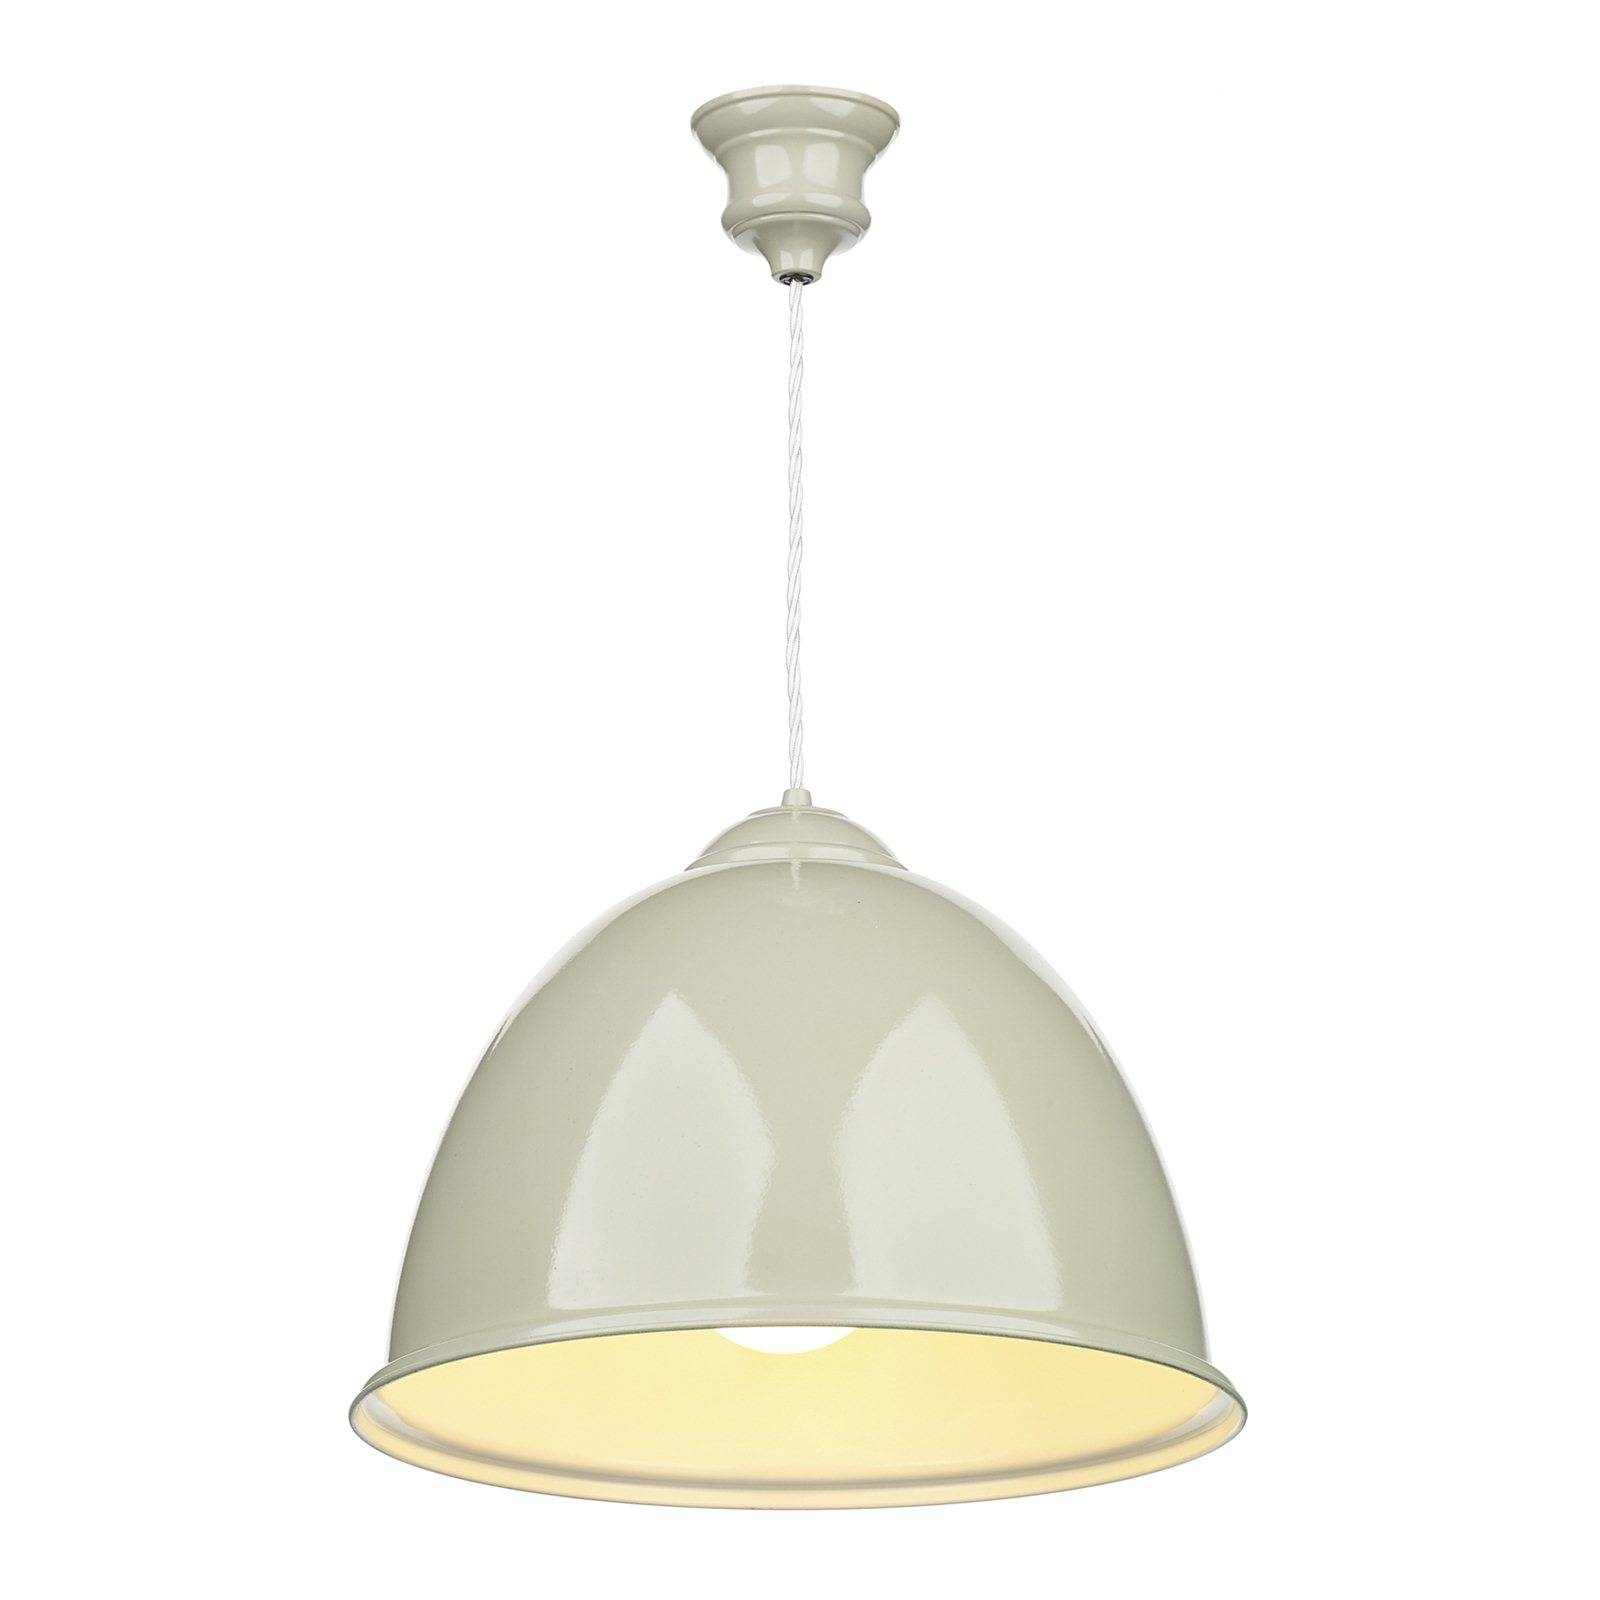 Hicks And Hicks Sennen Pendant Light French Cream - Hicks & Hicks inside Large Hicks Pendants (Image 5 of 15)